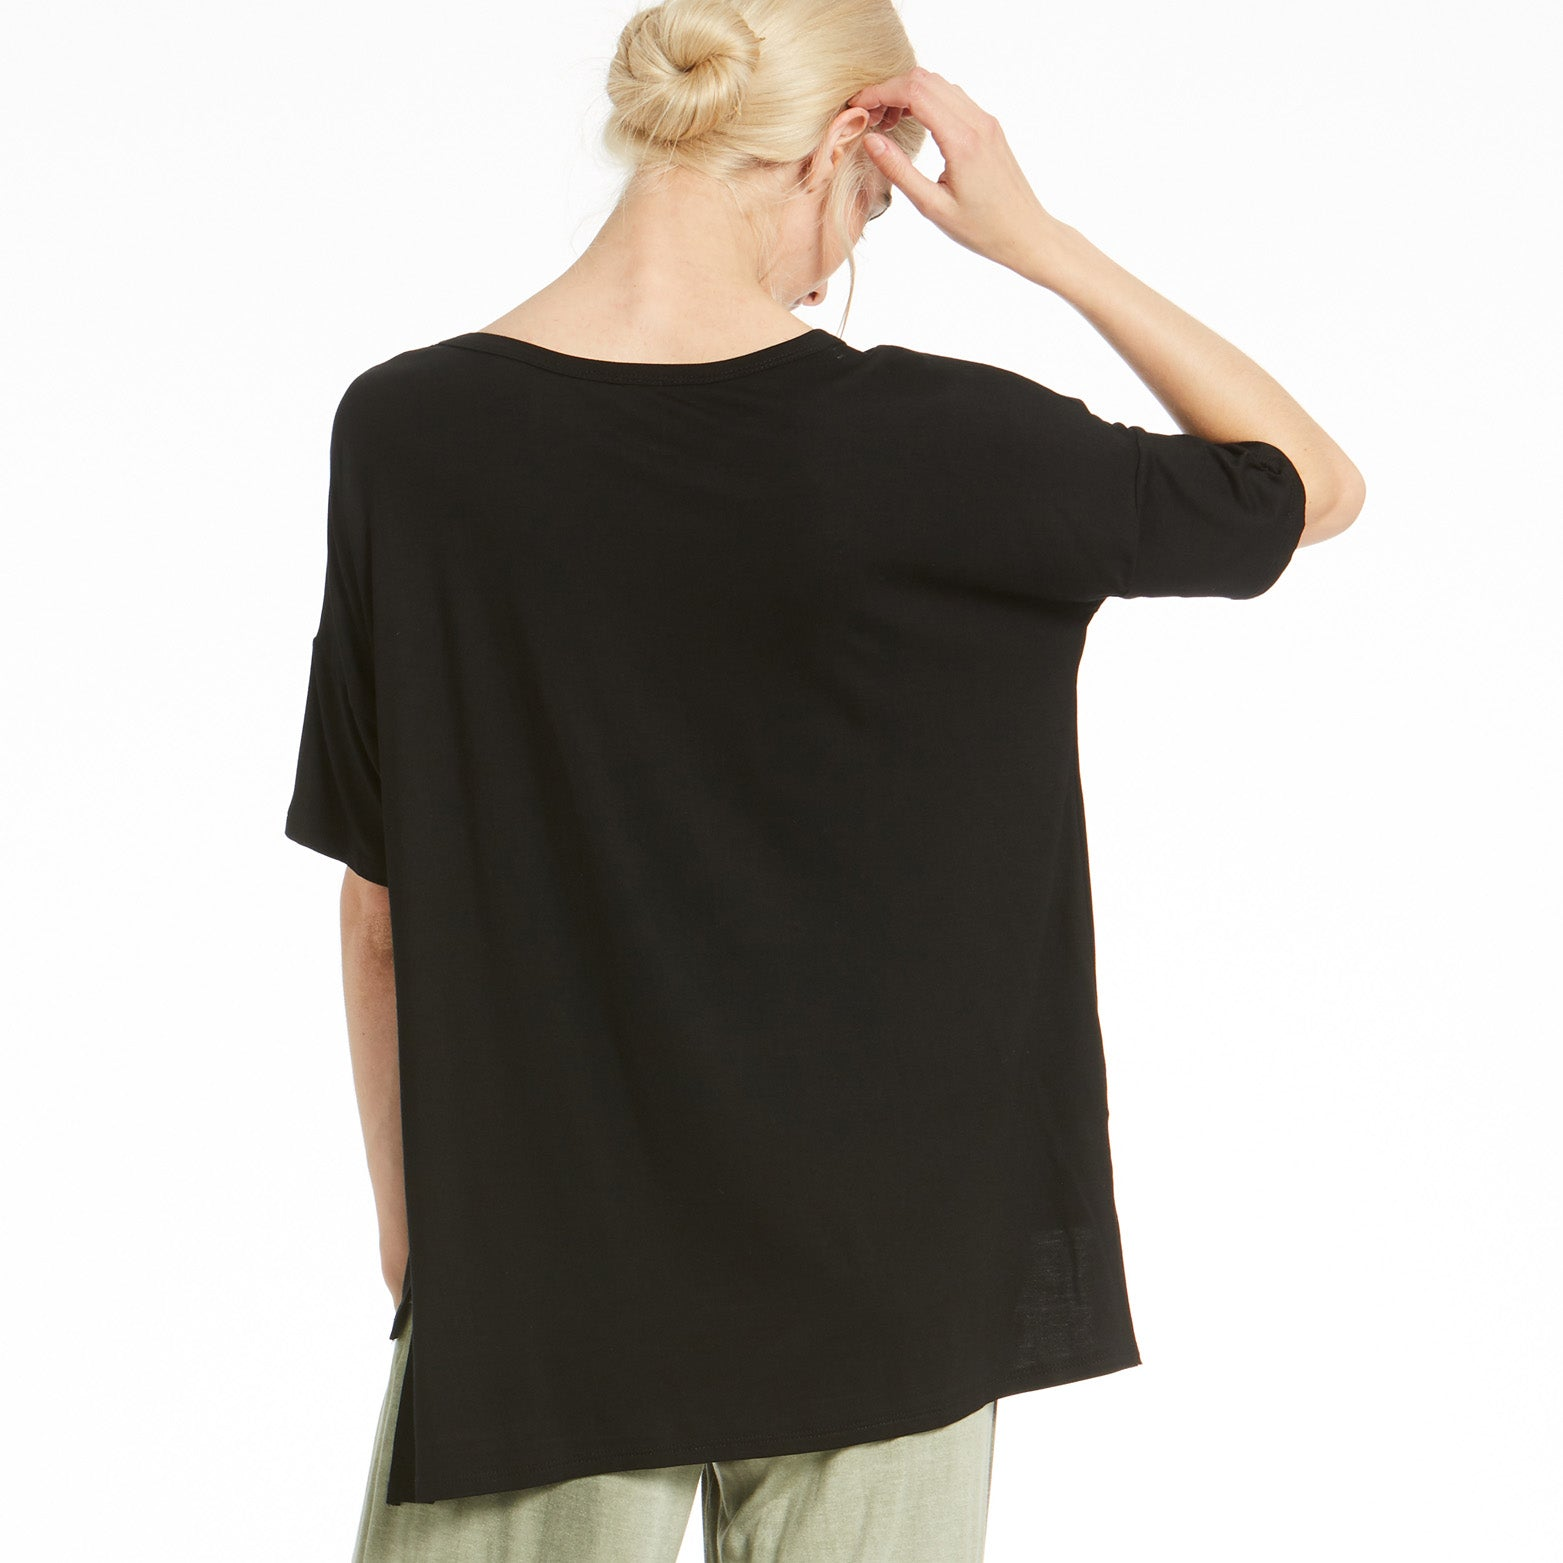 Comfy Desiree Oversize Top - Love, Kuza